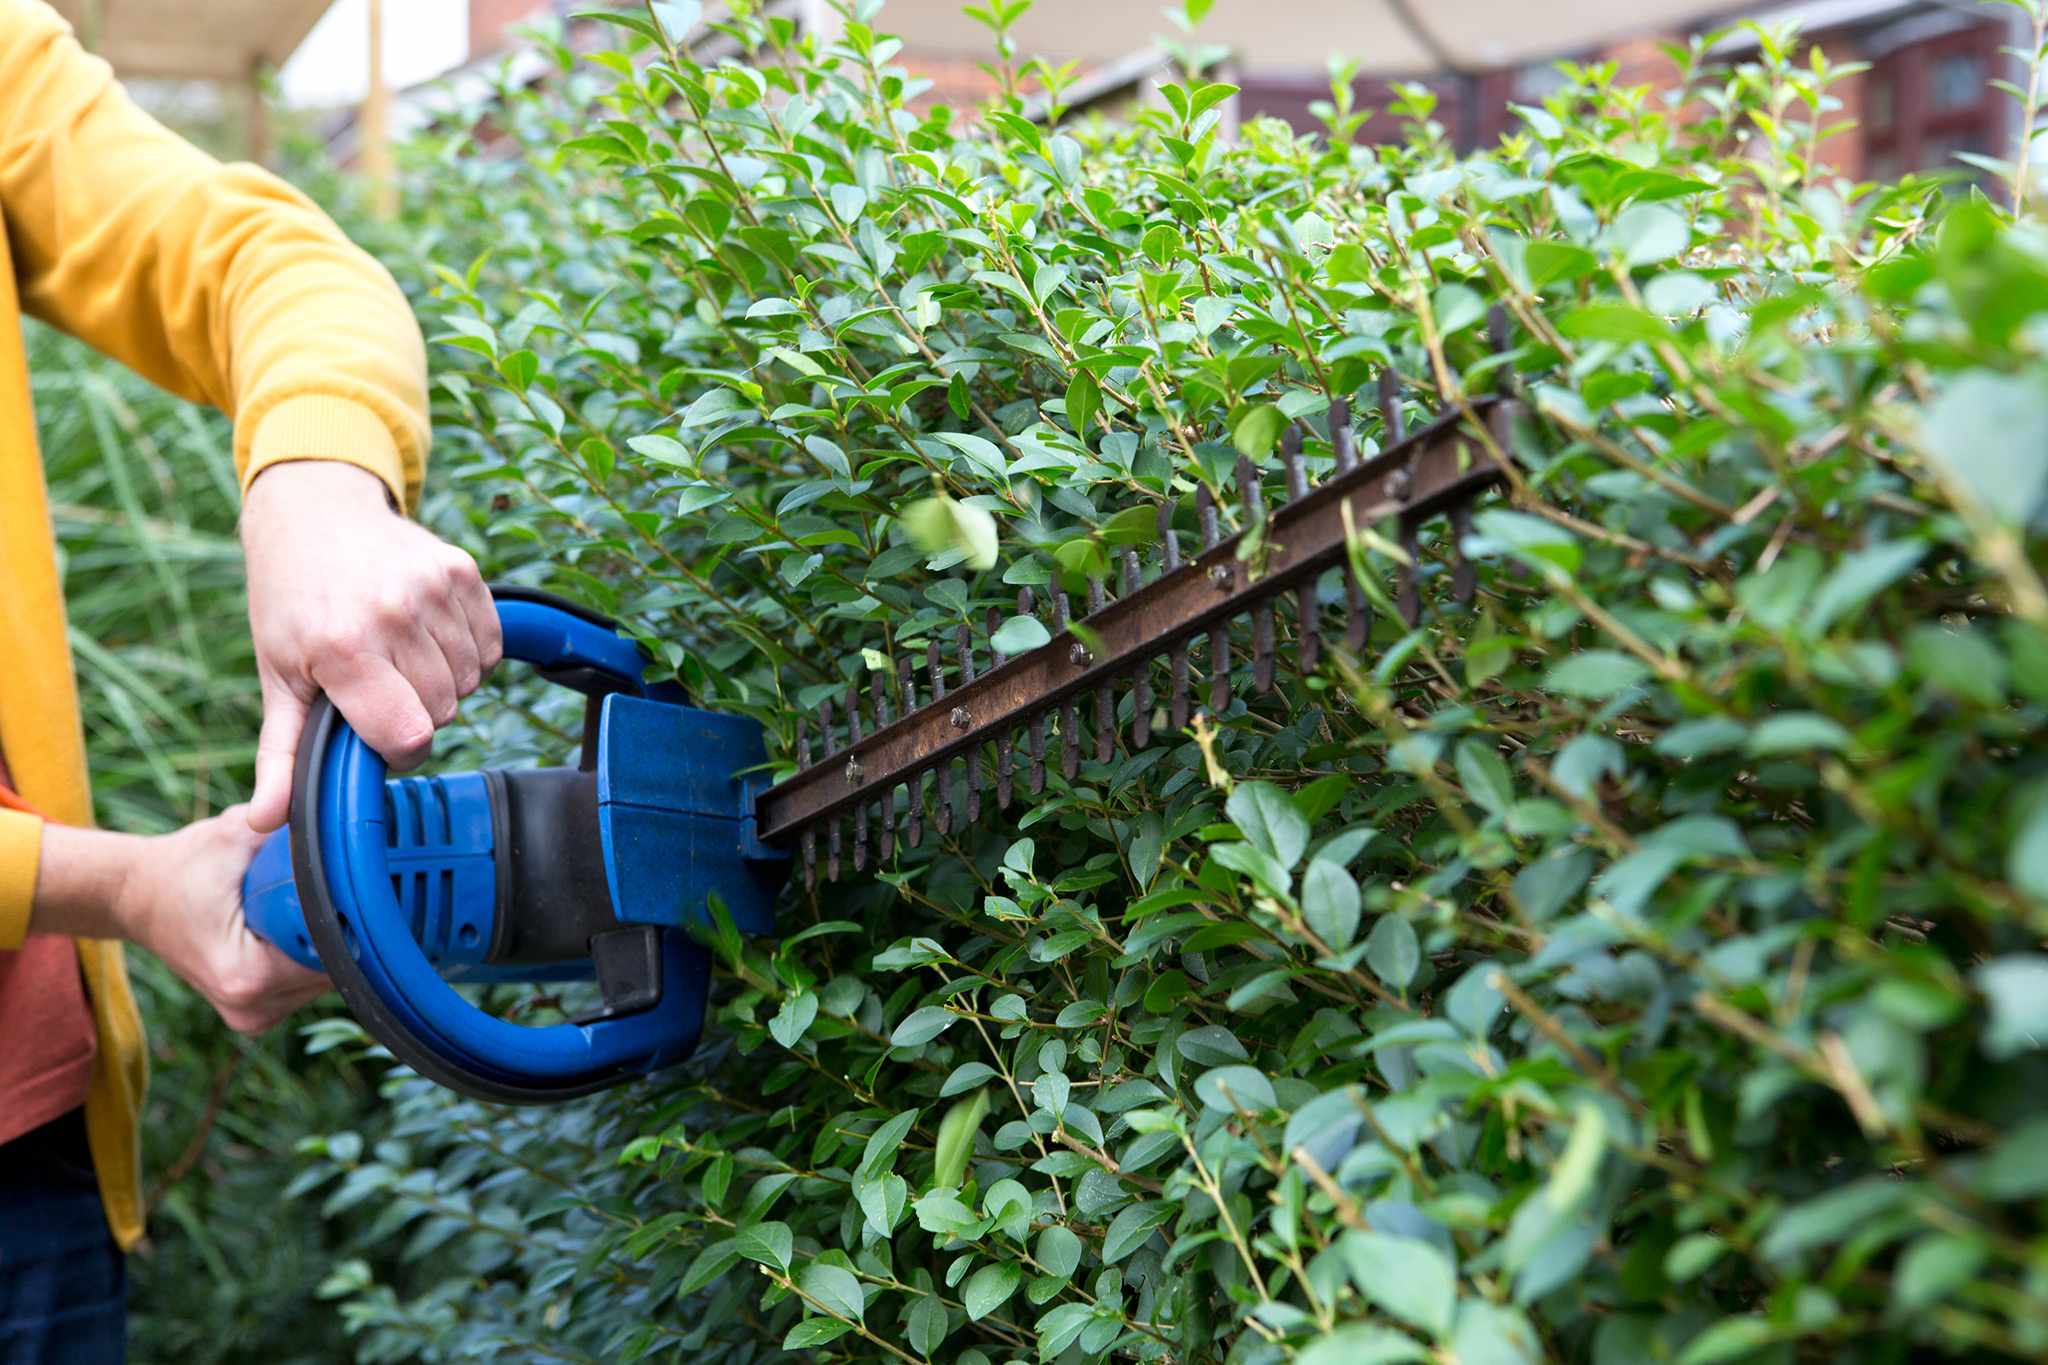 Trimming a privet hedge